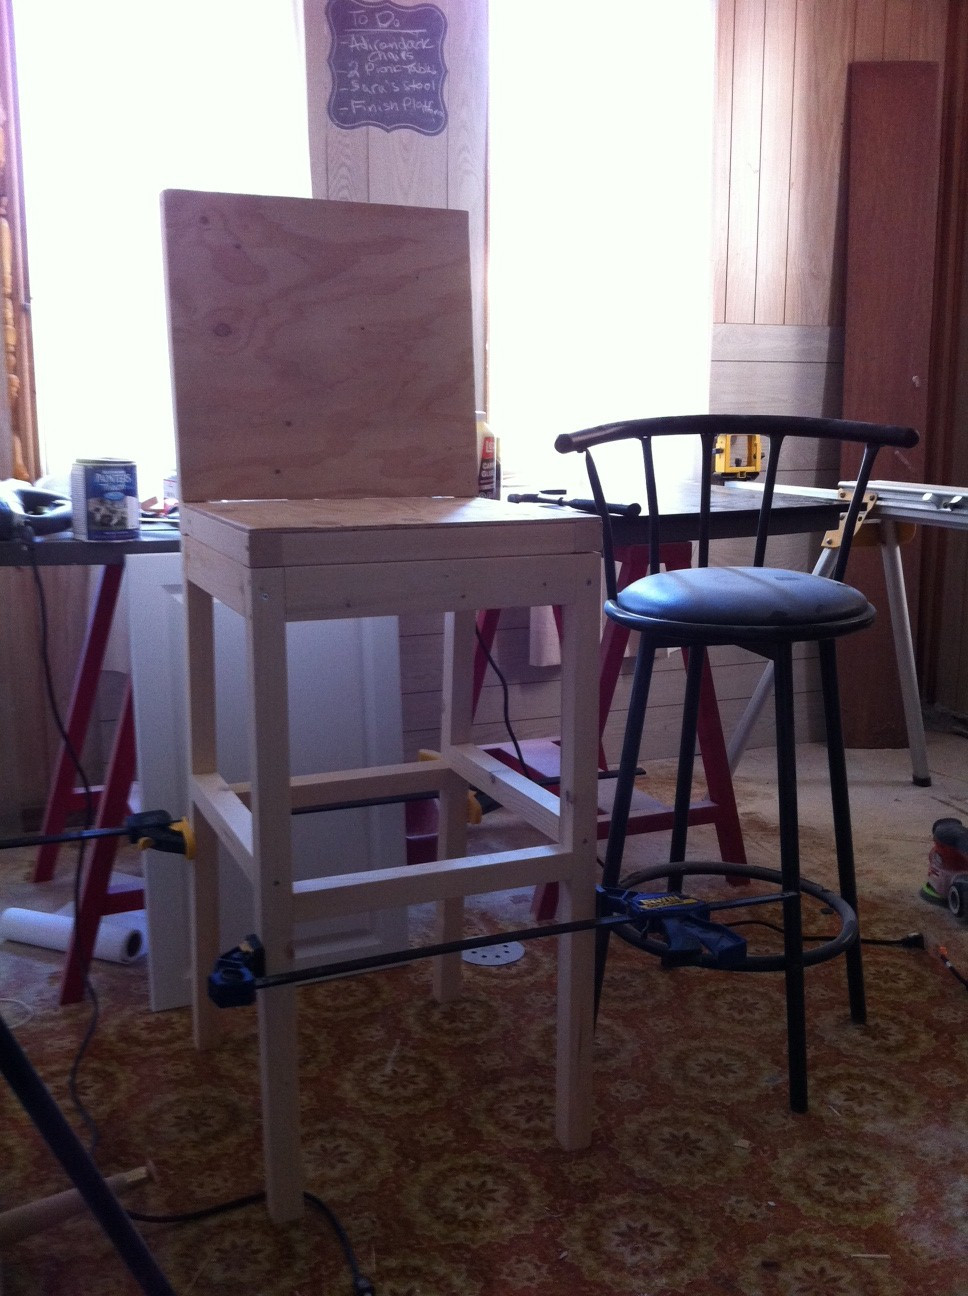 Best ideas about DIY Bar Stools . Save or Pin Ana White Now.